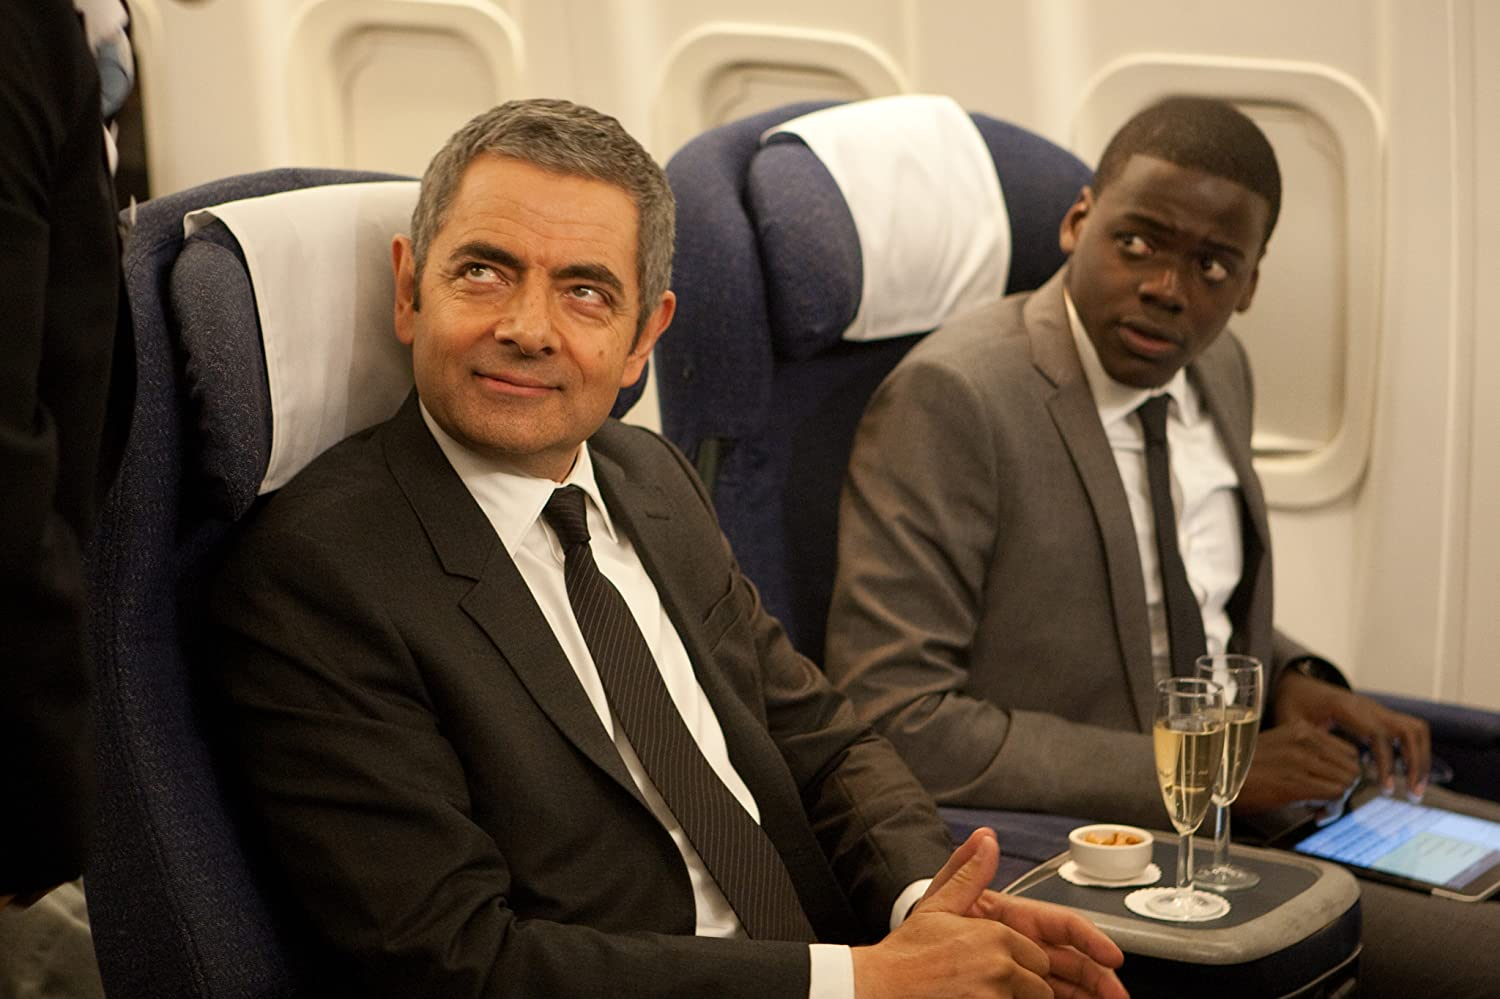 Rowan Atkinson and Daniel Kaluuya in Johnny English Reborn (2011)